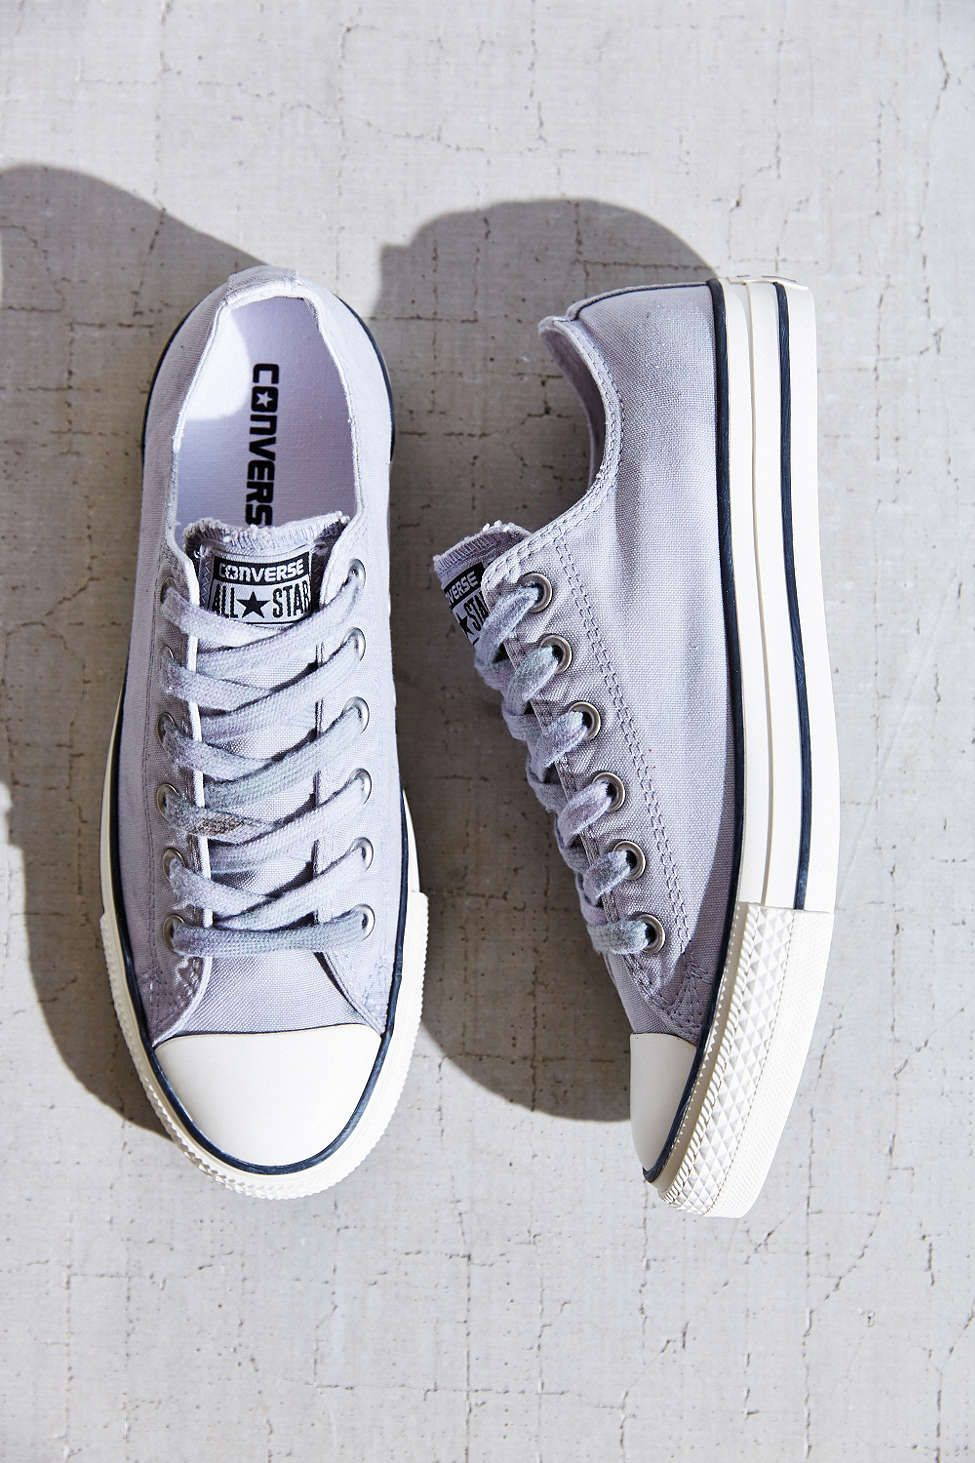 sneakers, Converse chuck taylor, Sneakers